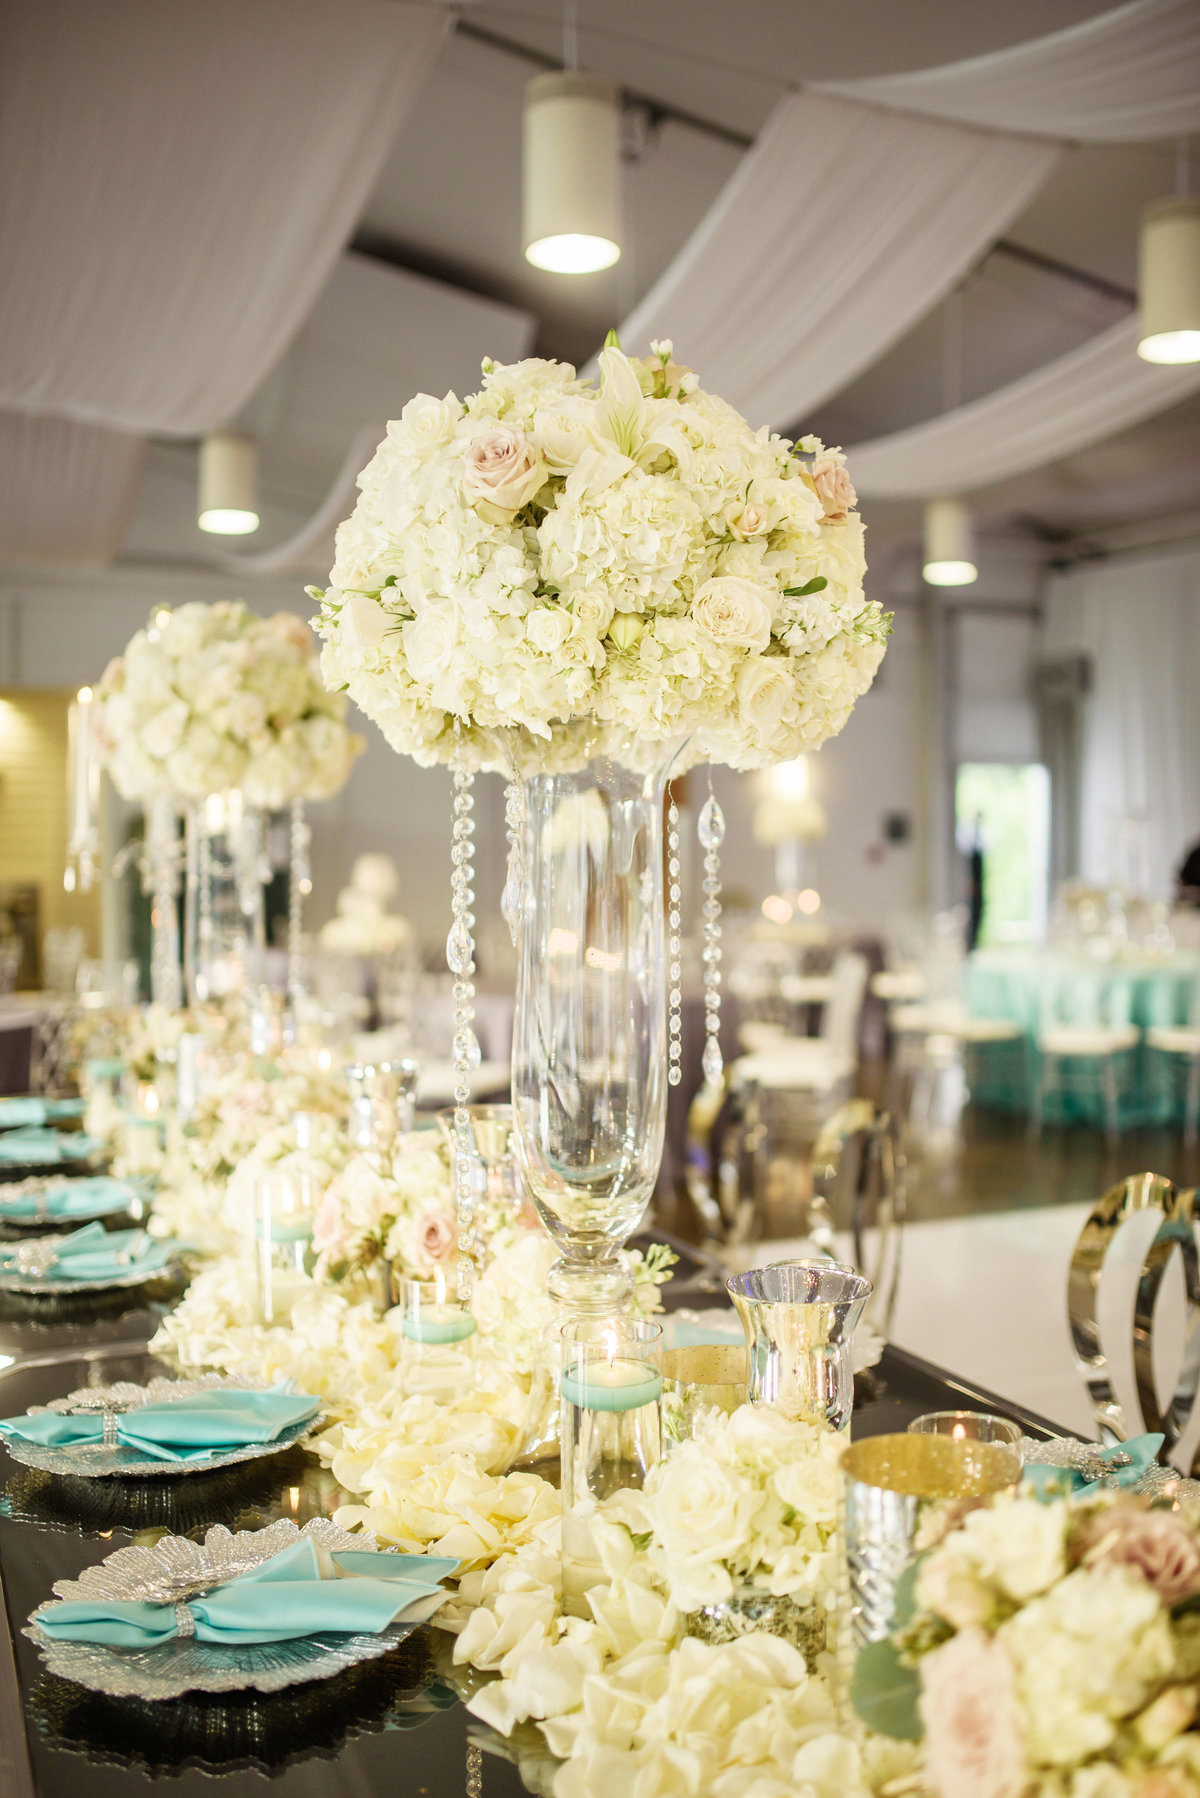 Lavishly Chic Designs Weddings Events Wedding Planning Coordination Designs New Orleans Louisiana Southern Destination South Delia King26